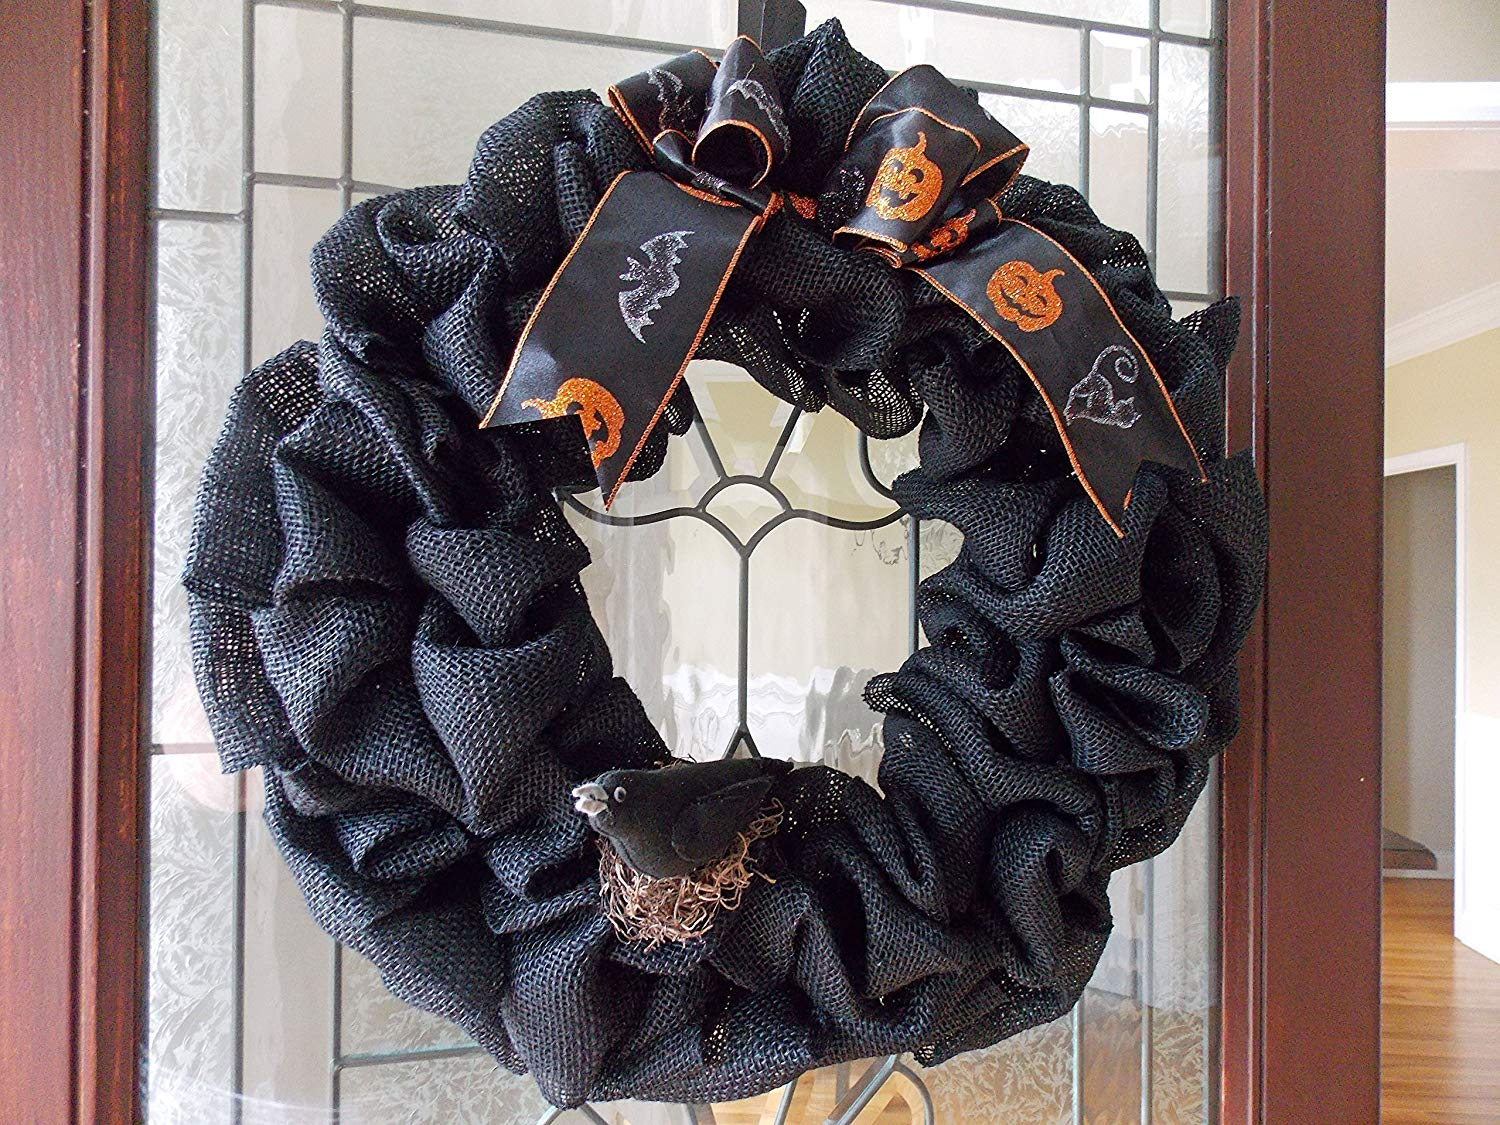 Halloween Wreath-Fall Wreath-Black Wreath-Burlap Wreath-Wreaths for Front Door-Fall Door Decor-Fall Door Wreaths-Crow Wreath